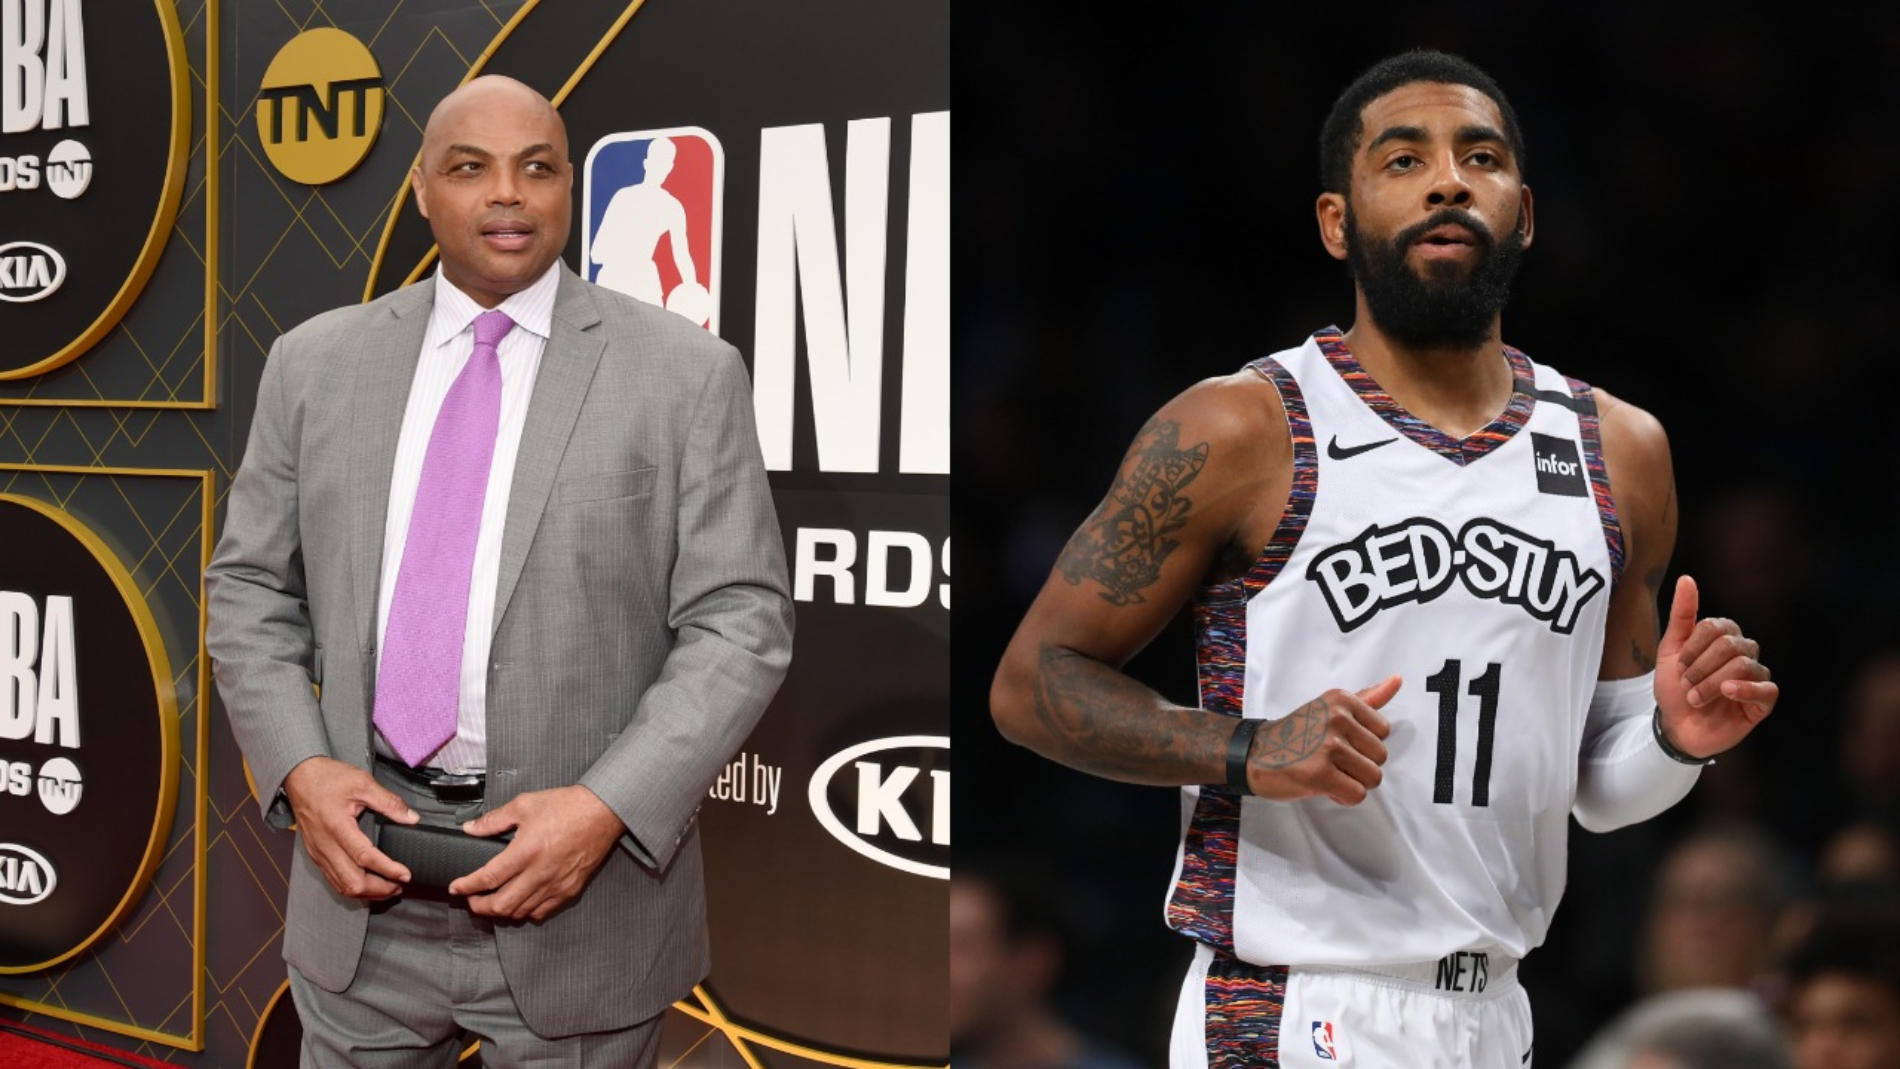 Kyrie Irving has been making headlines recently with his unwillingness to speak to the media. Charles Barkley appears to be fed up with him.